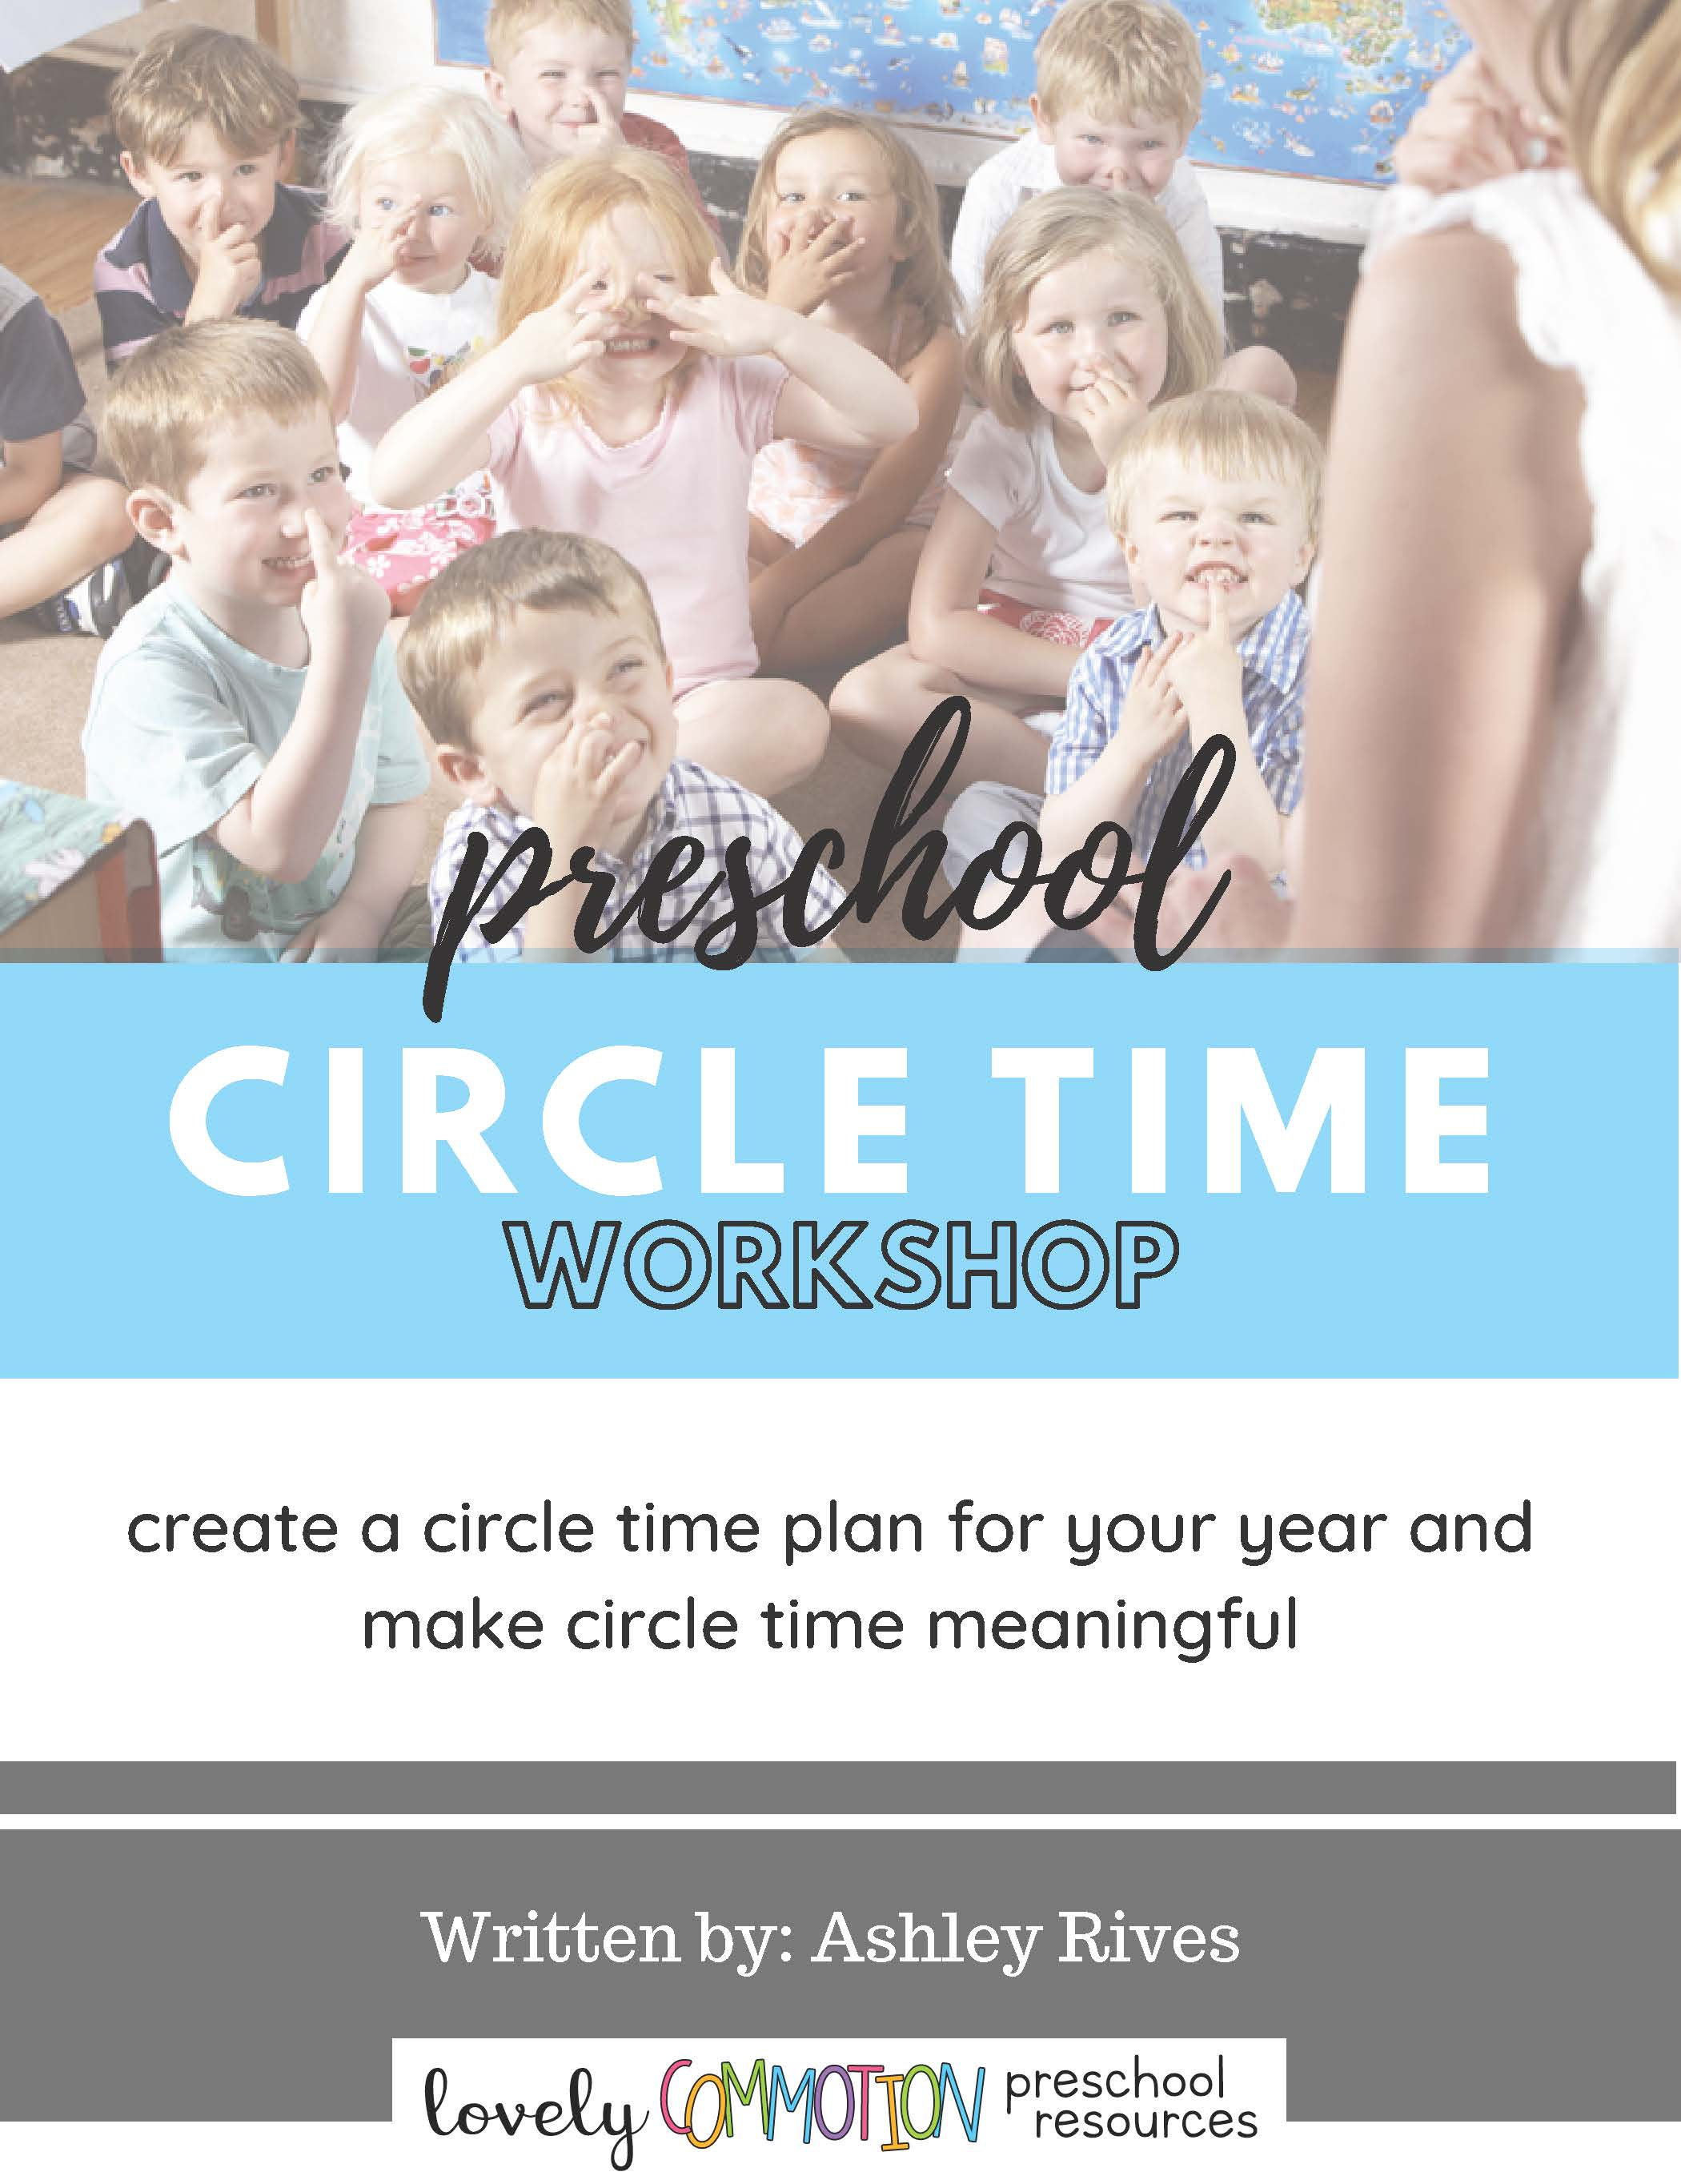 Copy of Preschool Circle Time Workshop Ebook_Page_01.jpg